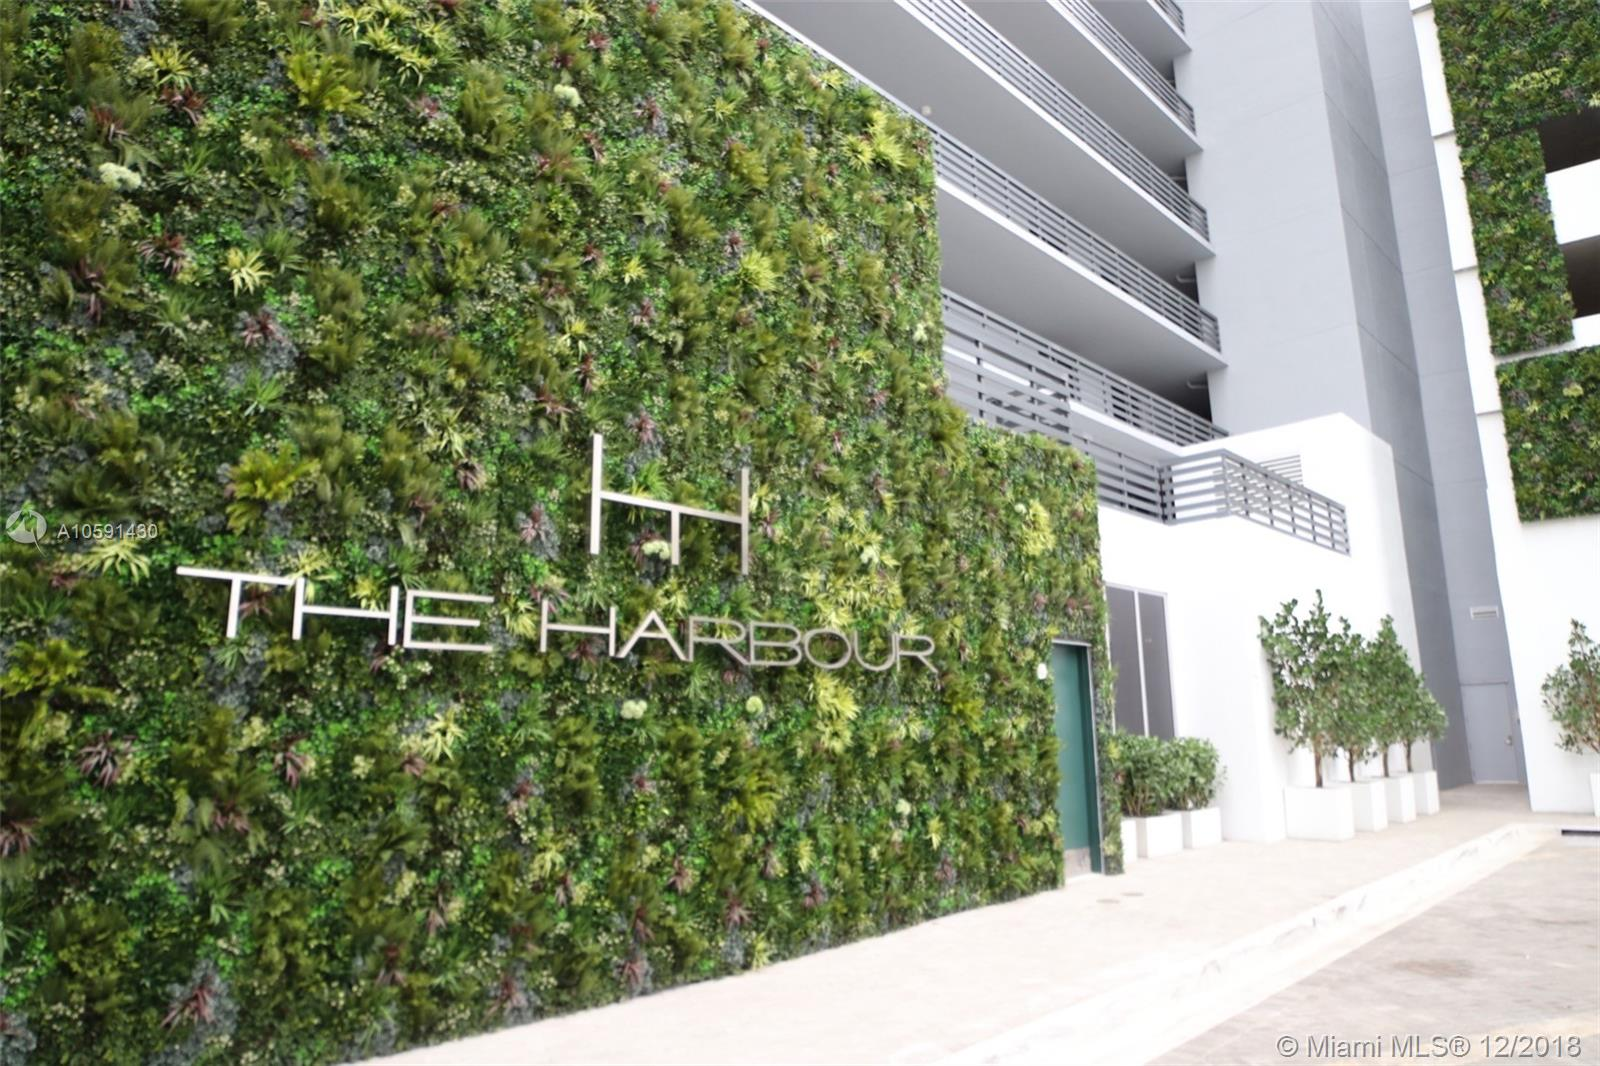 The Harbour #3221 - 16385 E Biscayne #3221, North Miami Beach, FL 33160